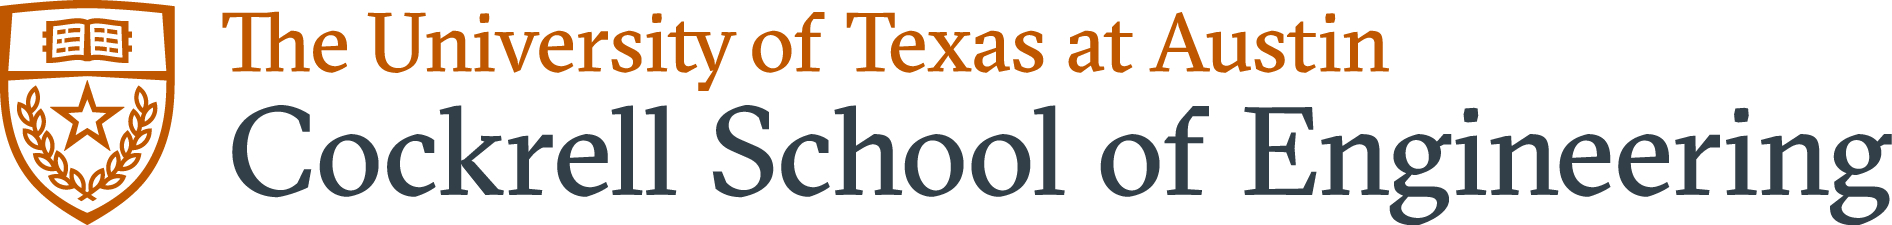 Cockrell School logo